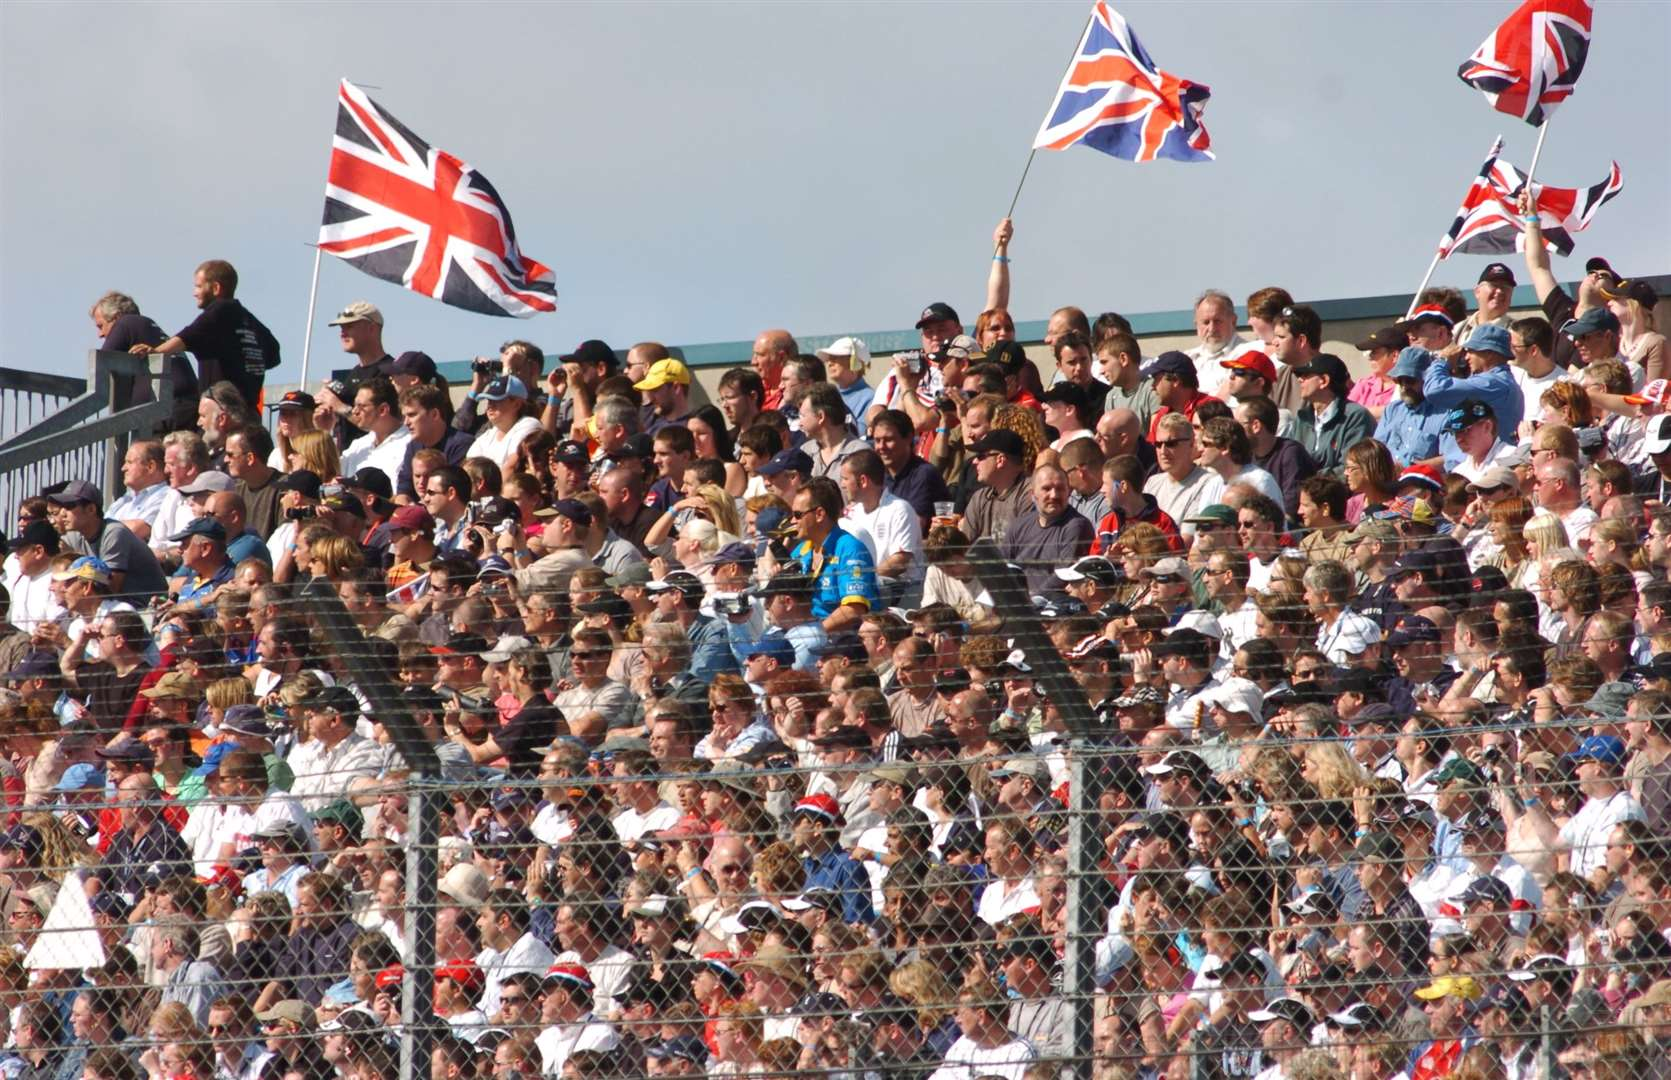 Thousands attended the first-ever A1 event in September 2005. Picture: Barry Goodwin